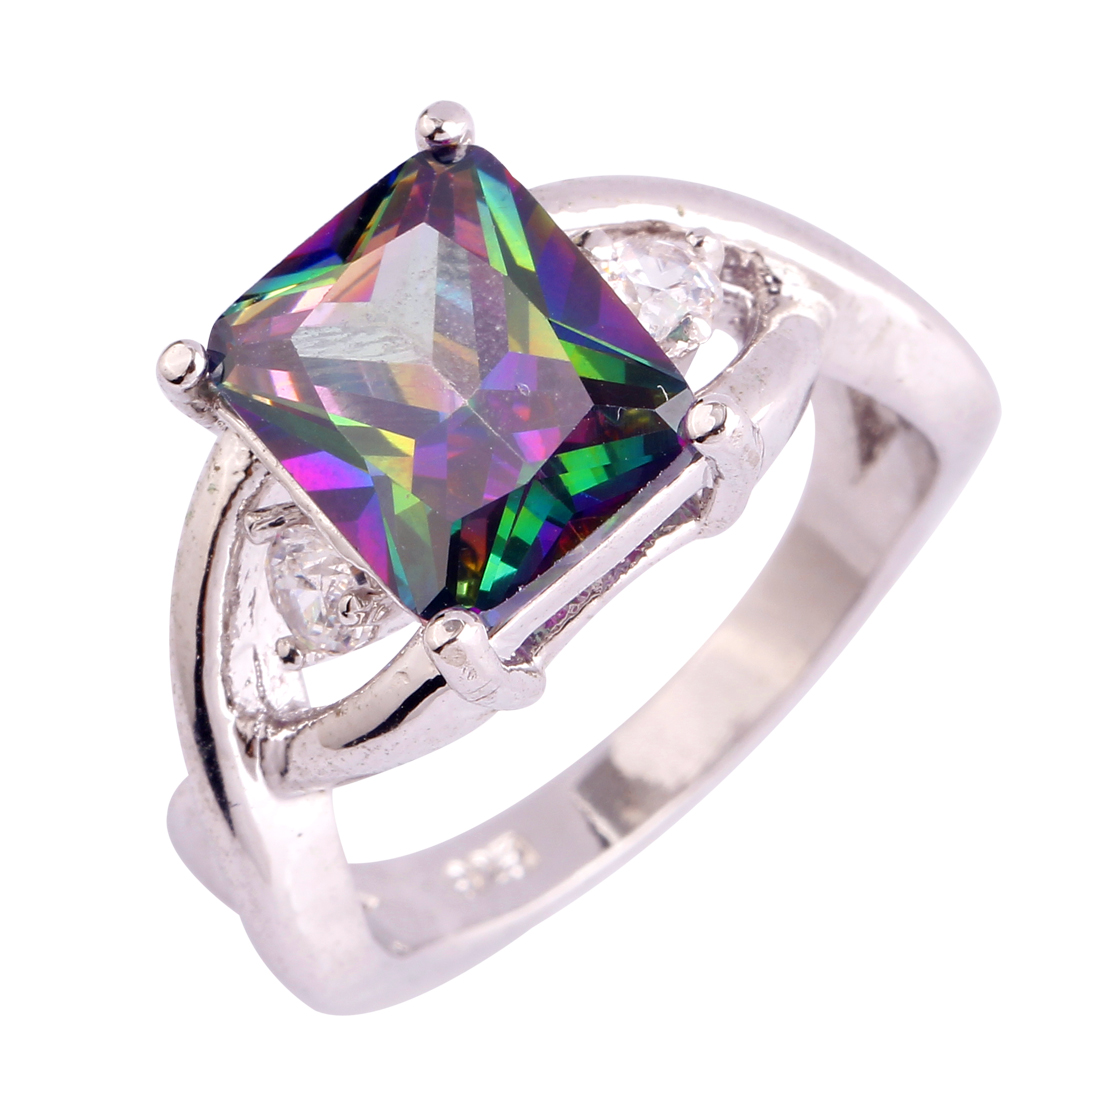 Party Gift Rainbow CZ Women Men Rings Size 6 7 8 9 10 11 Free Shipping Plated Silver Rings Wholesale Handmade Jewelry Elaborate